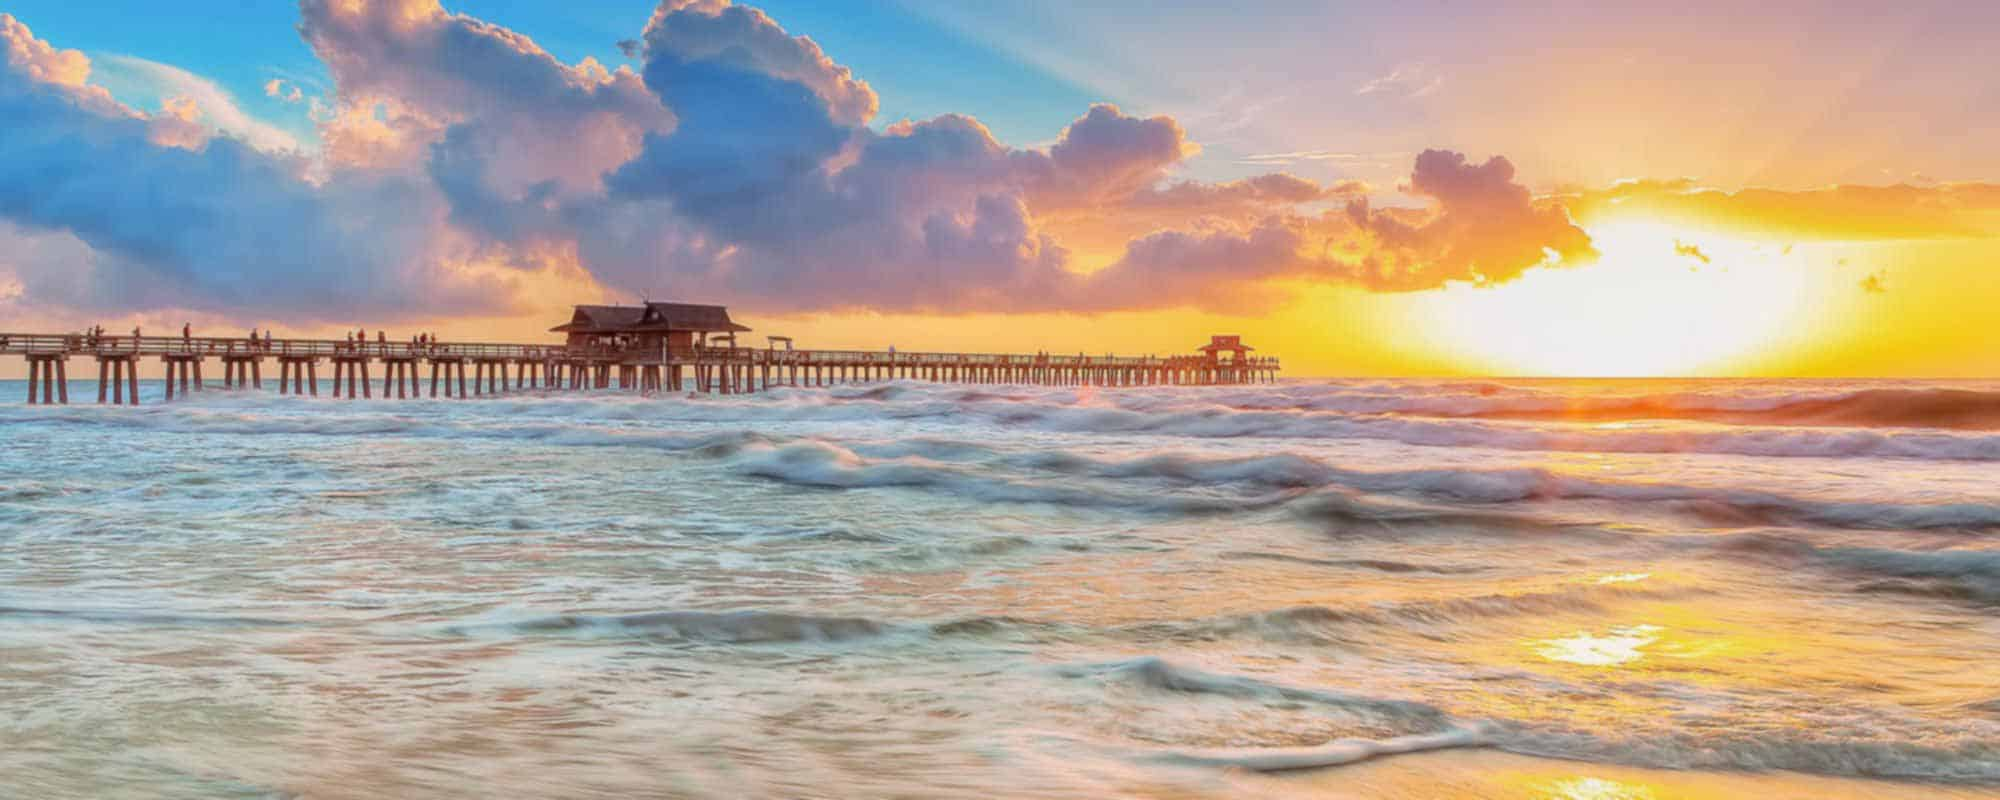 Record-Breaking Year for Florida Tourism!